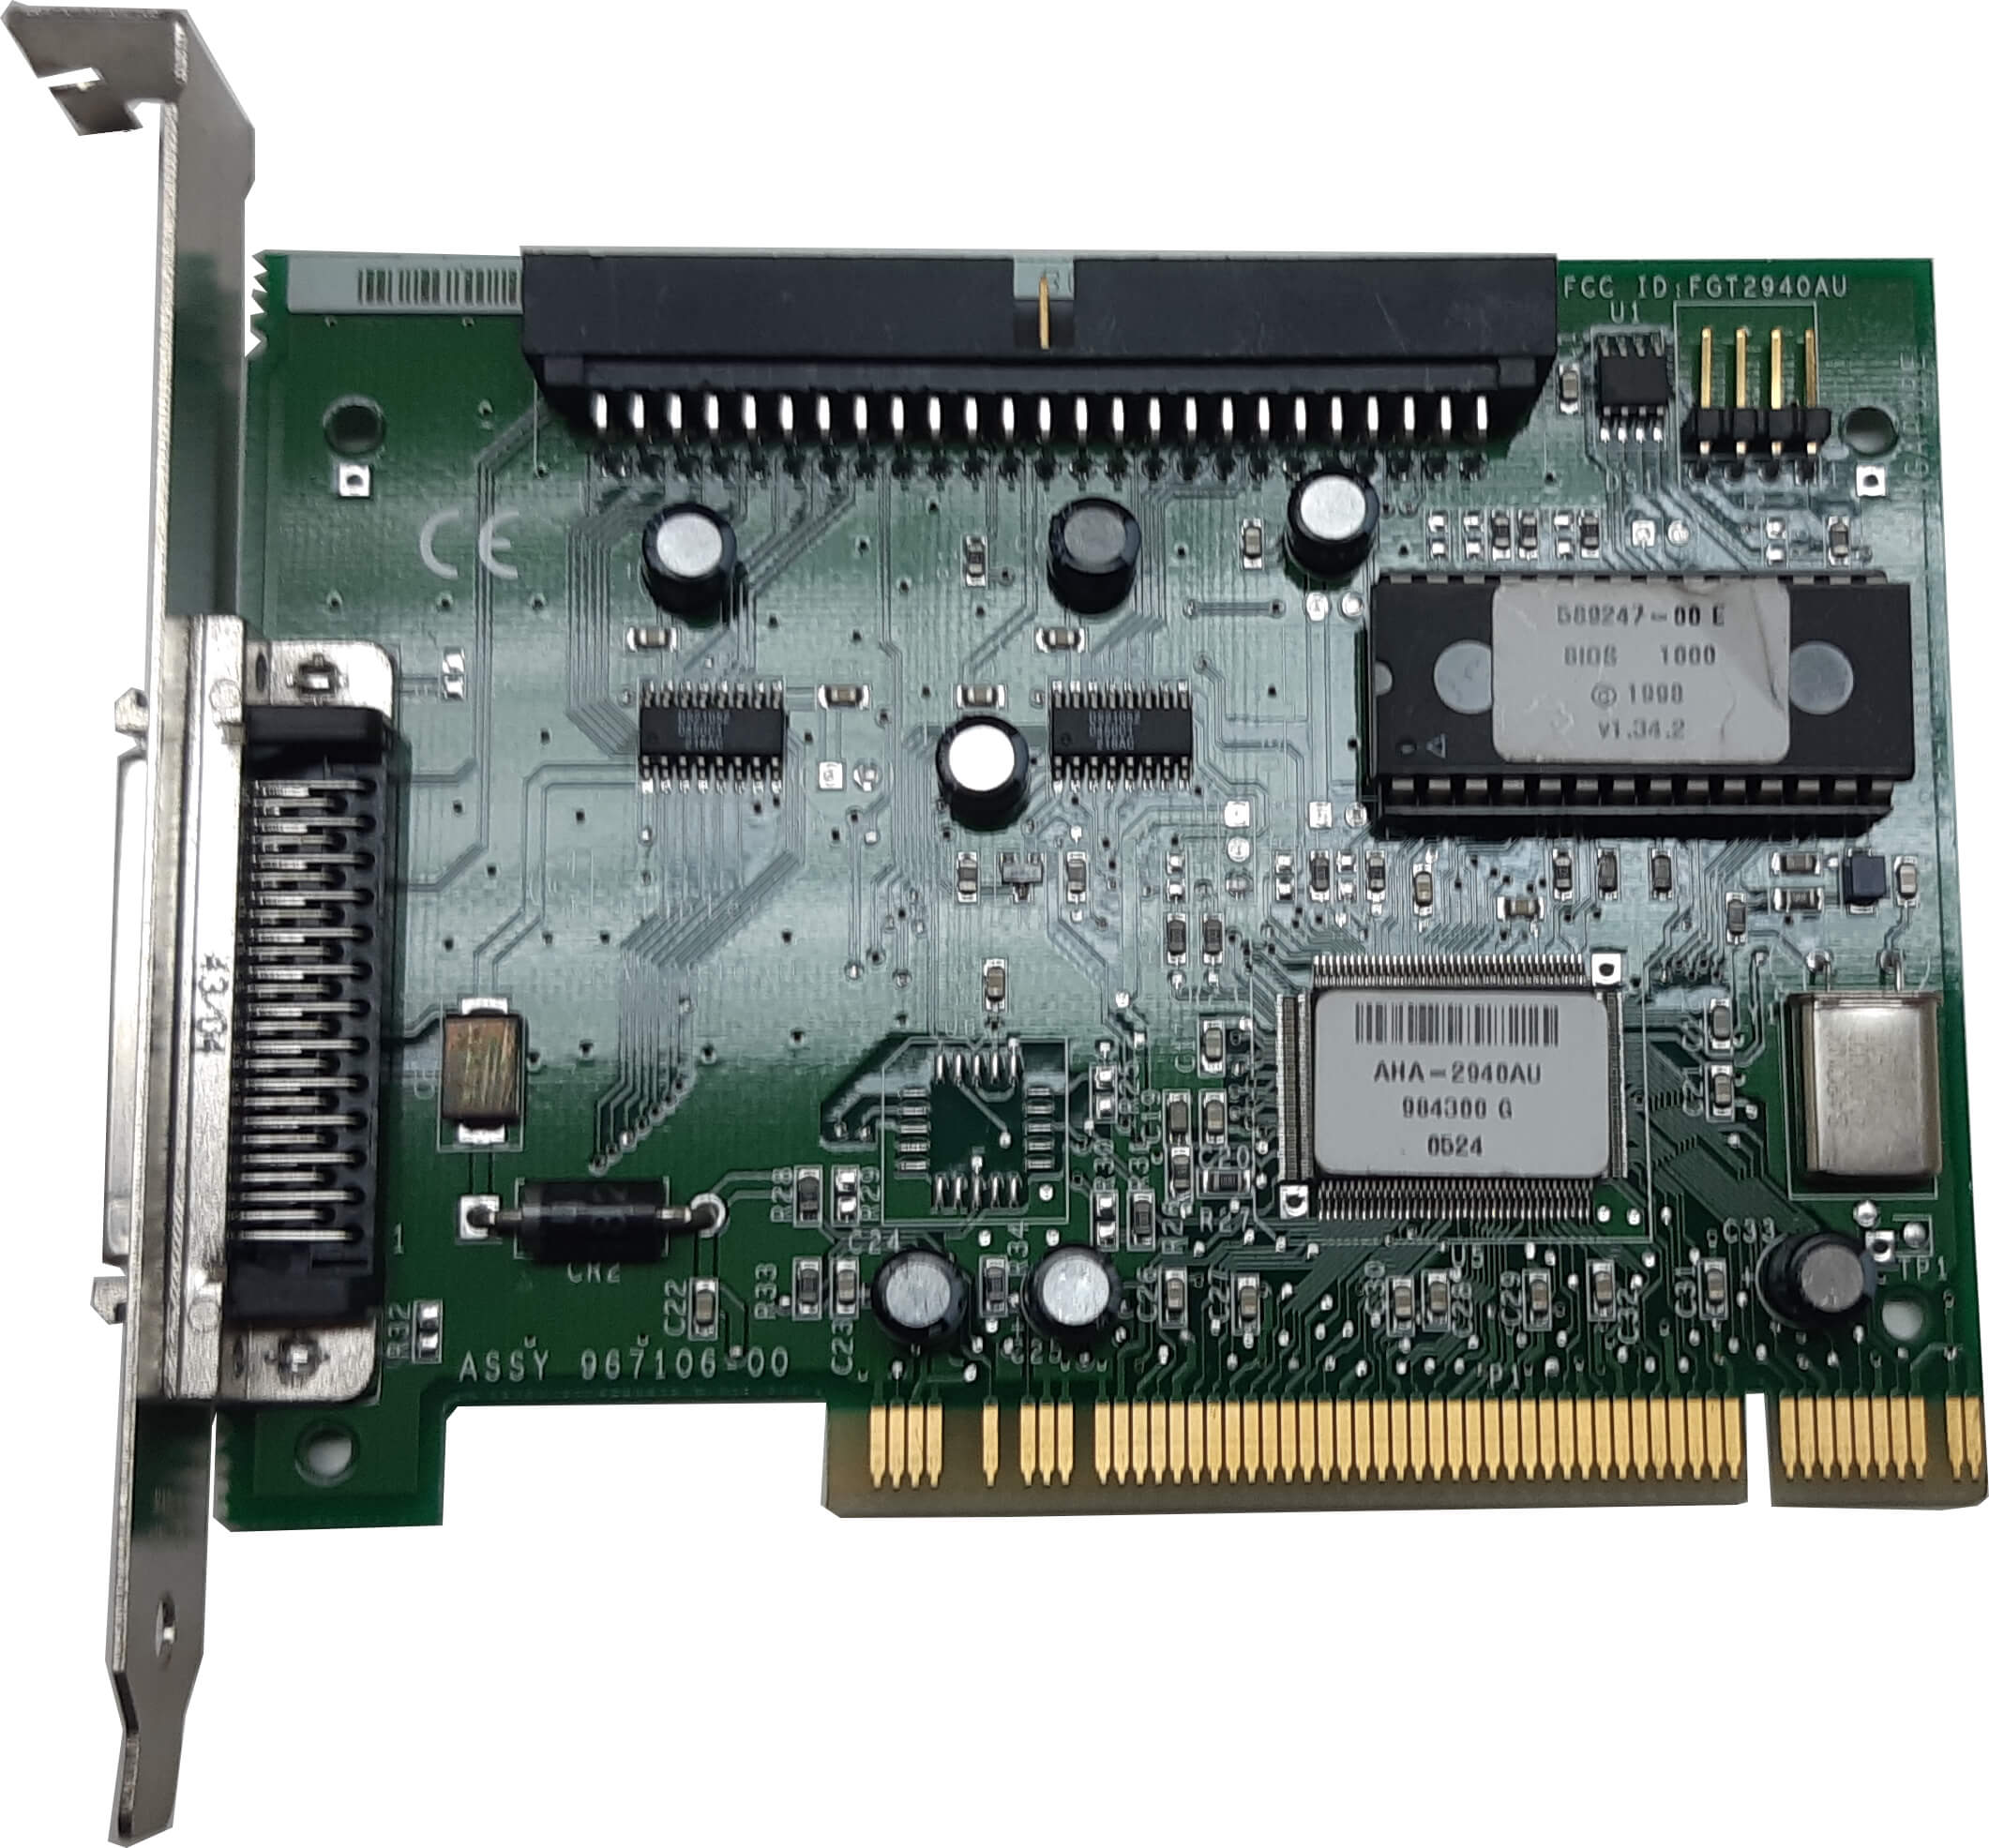 ADAPTER SCSI PCI WYSOKI PROFIL